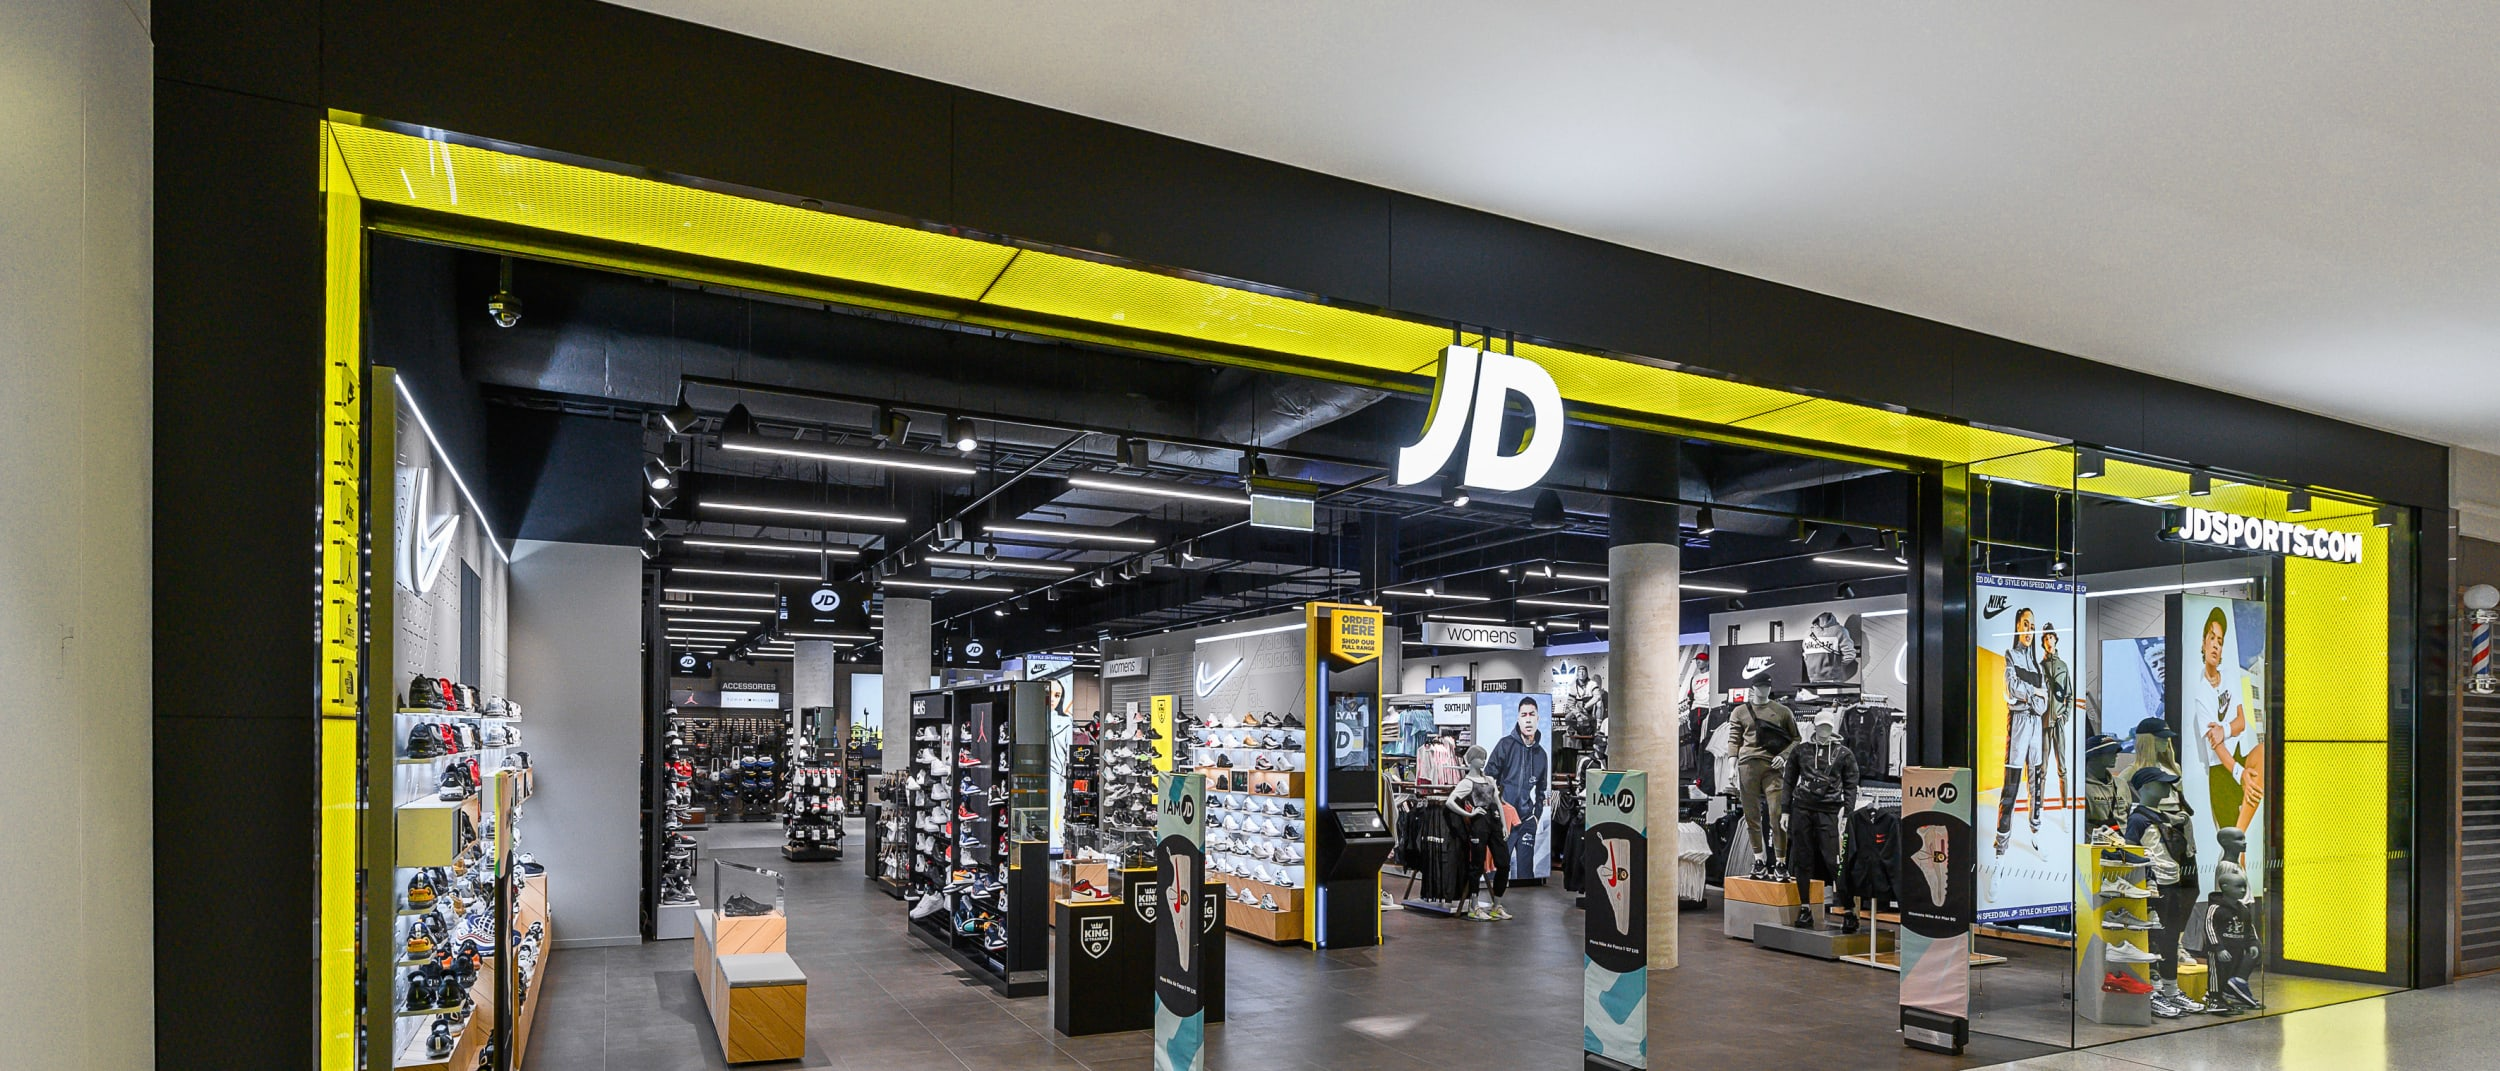 JD Sports is now open